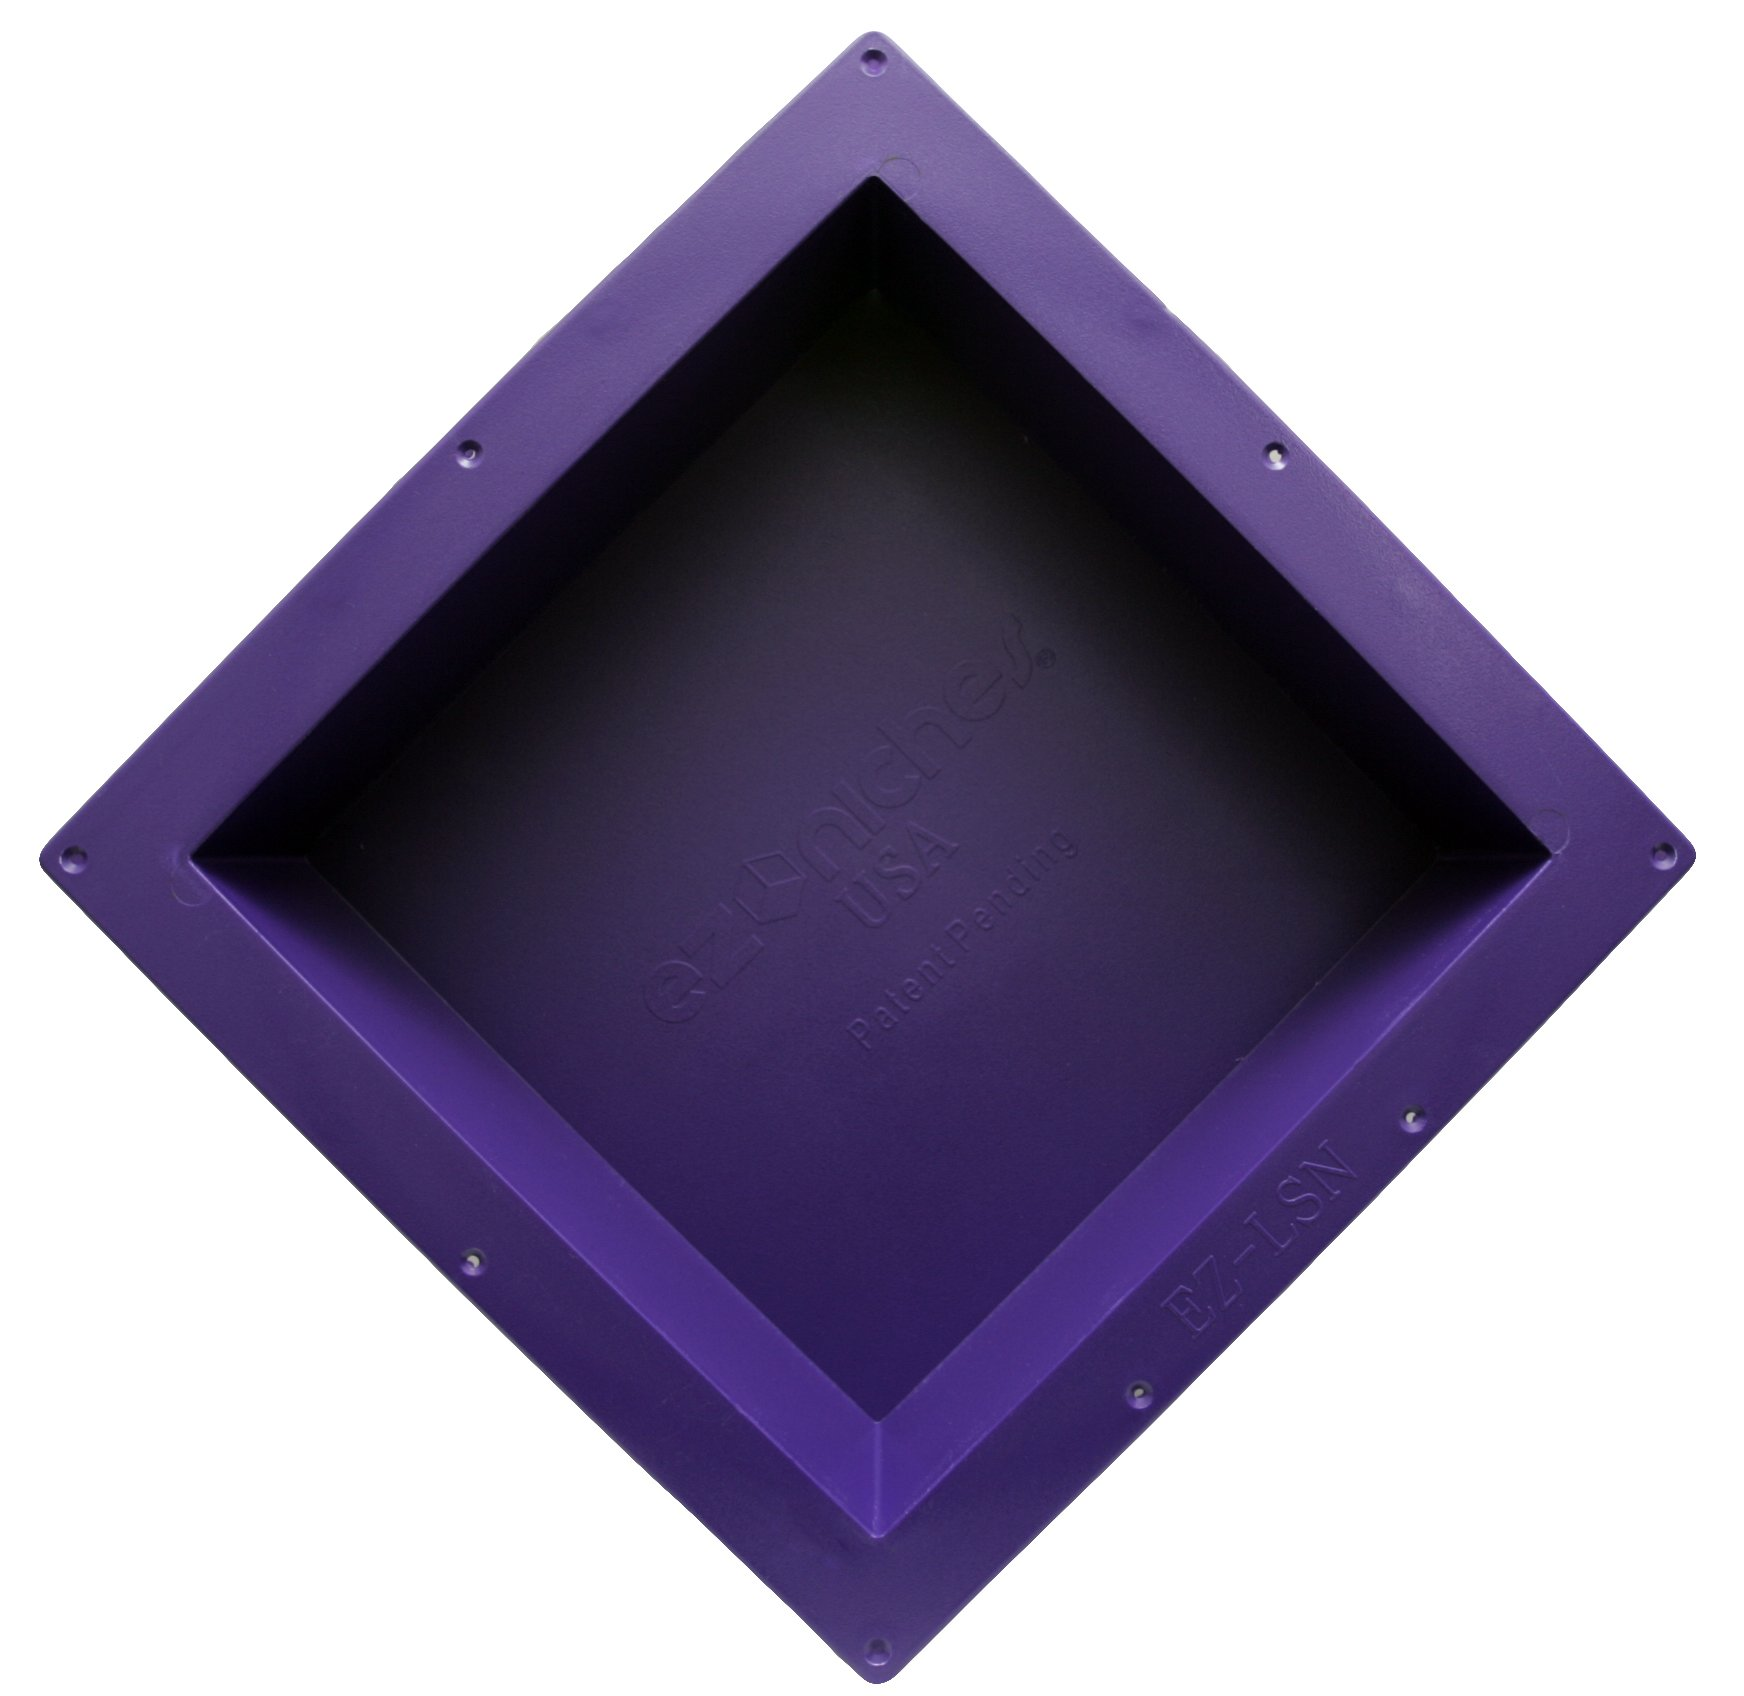 EZ-NICHES - USA - EZLSN - 14in x 14in - Recessed Tile Ready Wall Shampoo Soap Niche by EZ-NICHES